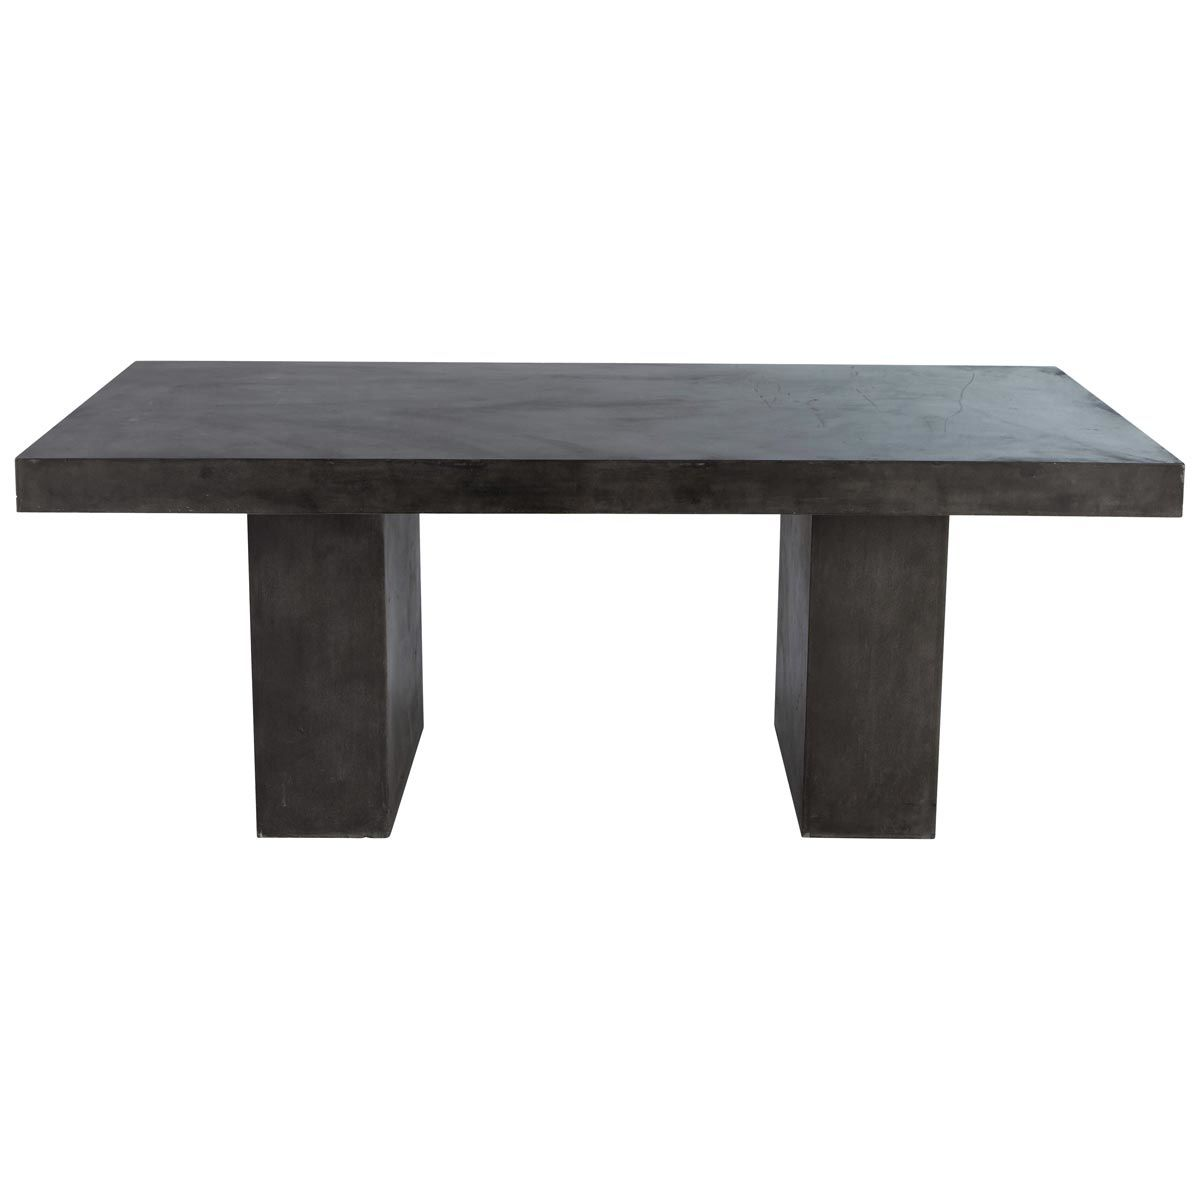 Concrete effect magnesia table in charcoal grey w 200cm for Tavolo legno maison du monde